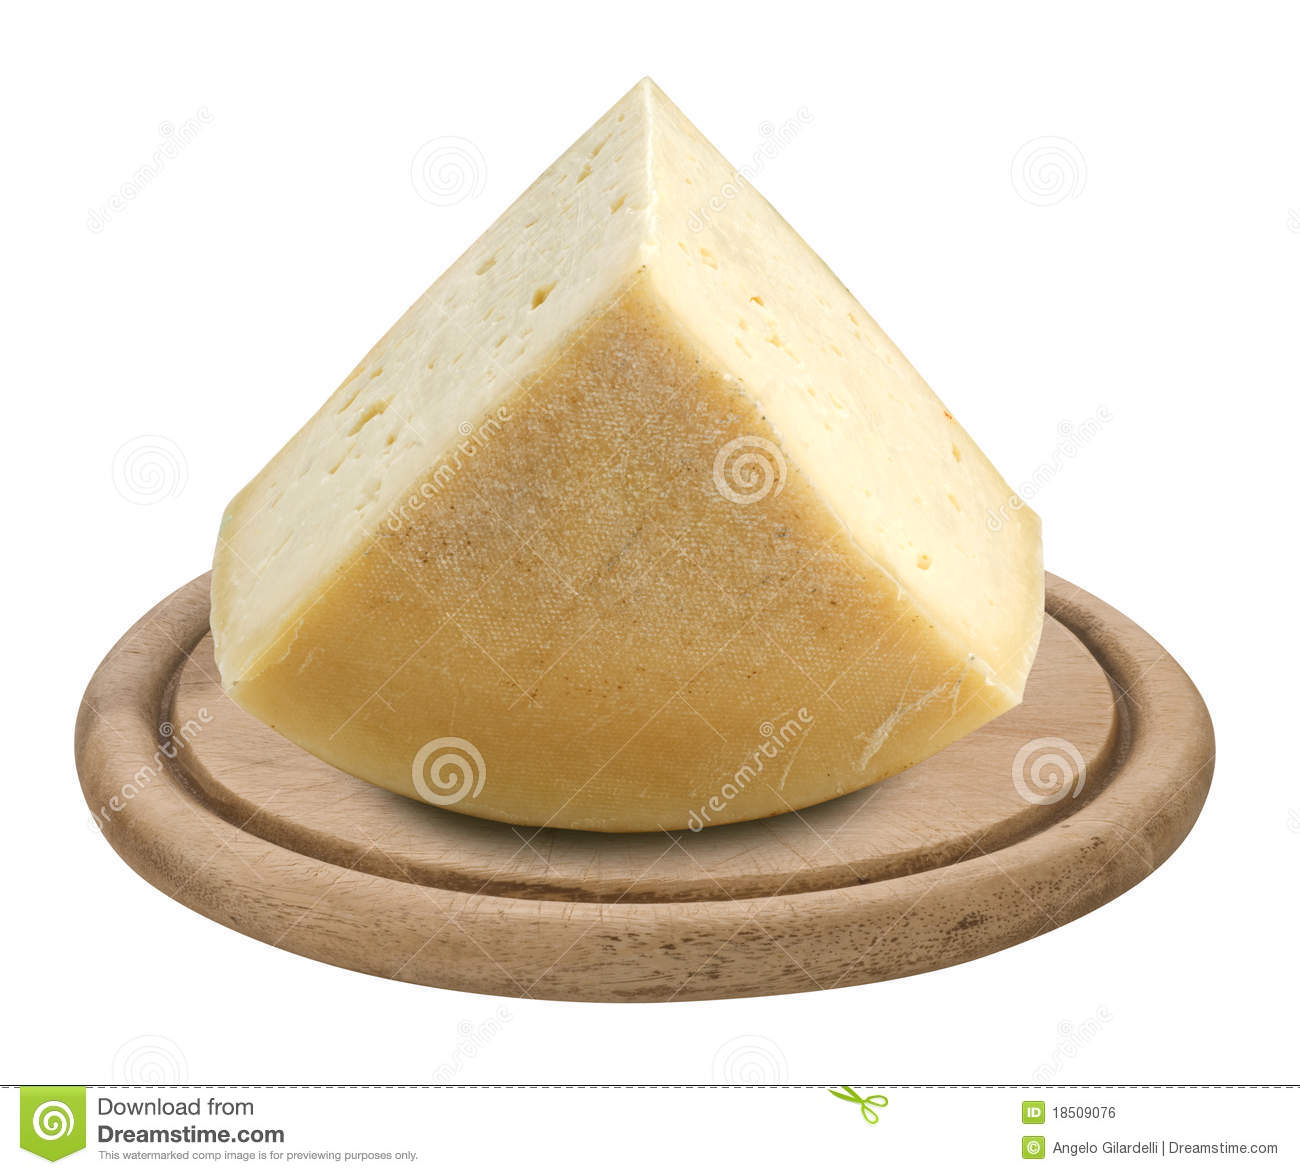 cheese-wooden-plate-18509076